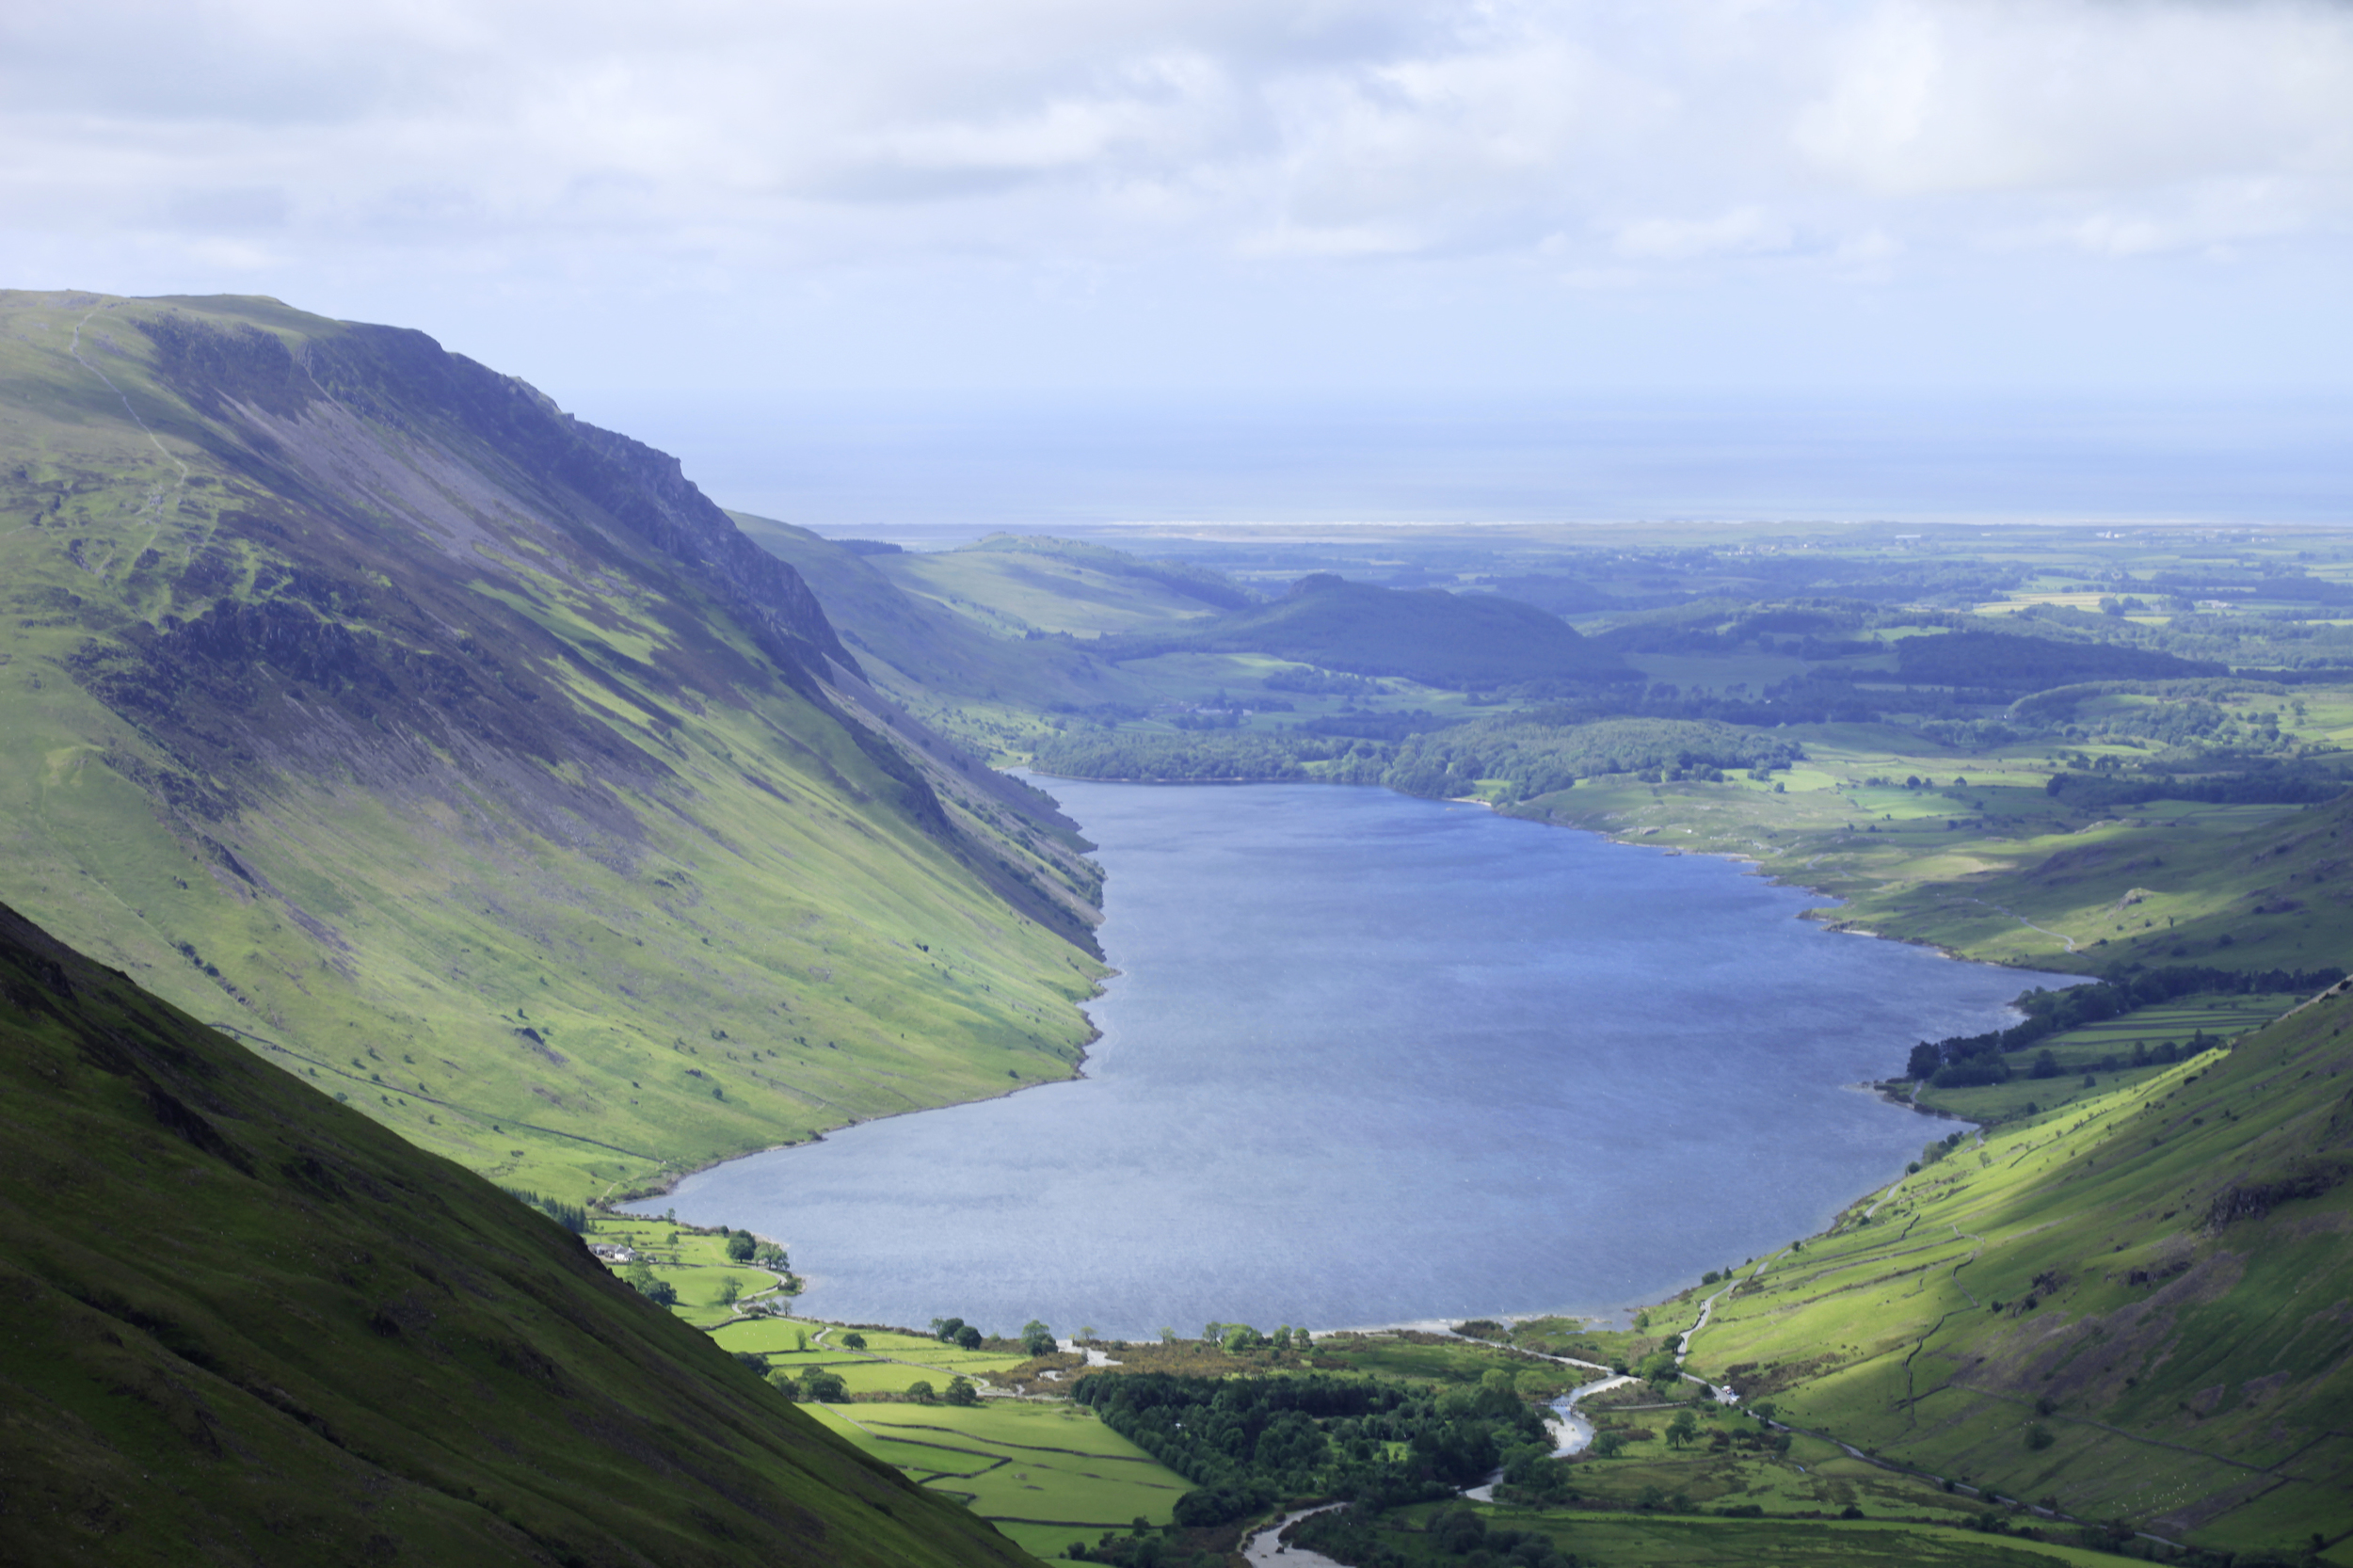 Wast Water from the sloes of Scafell Pike. Photo: Tom Bailey © Trail Magazine